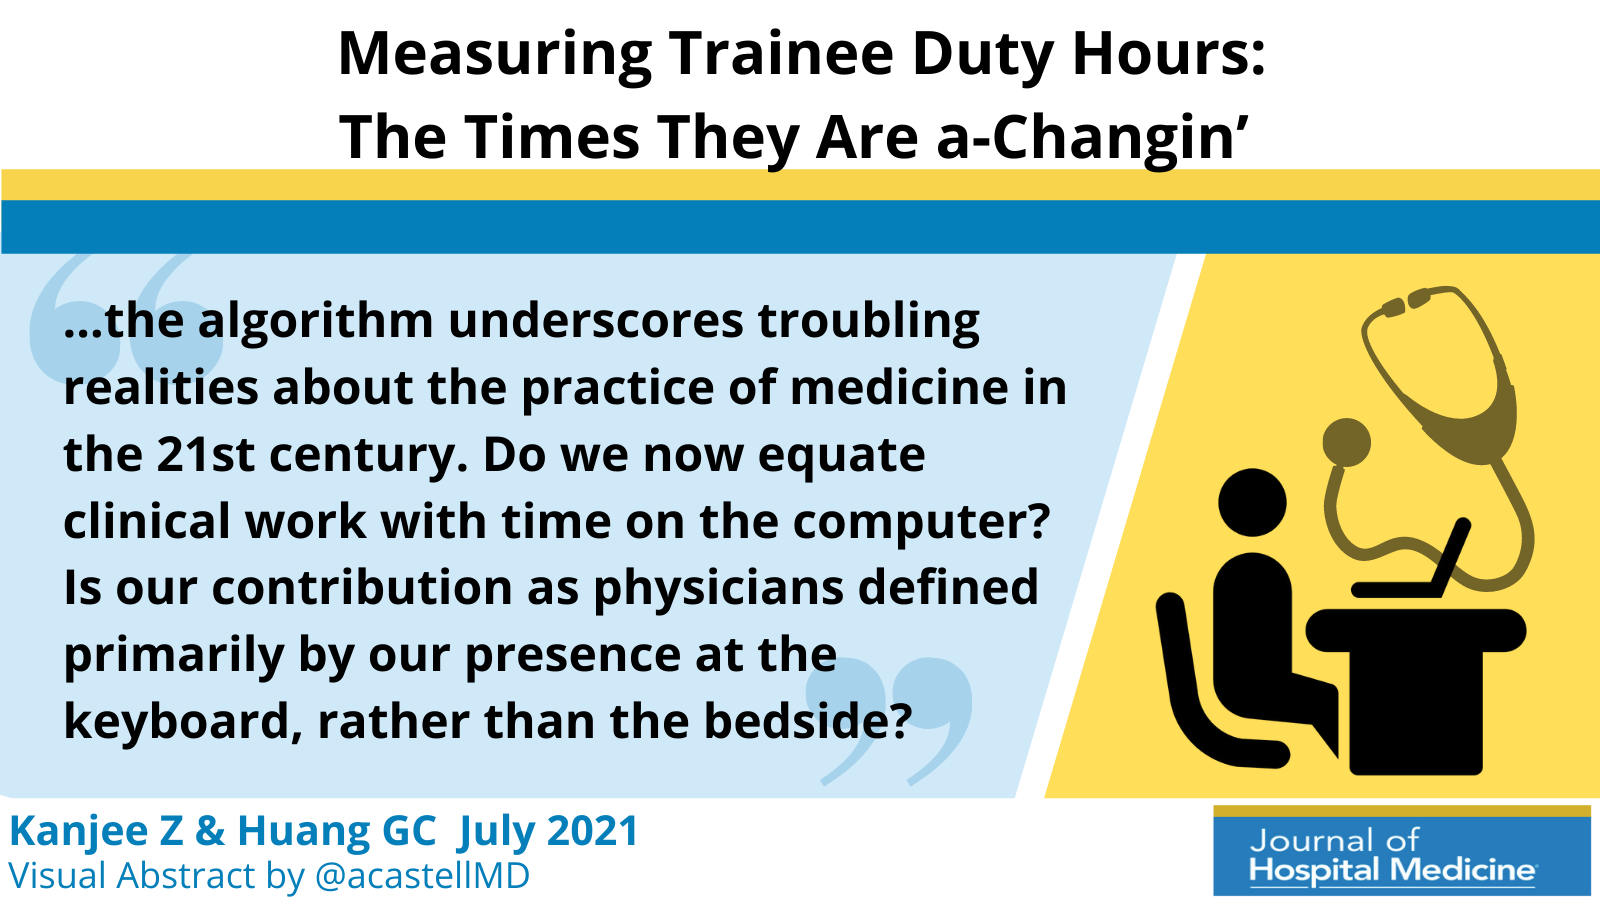 Measuring Trainee Duty Hours: The Times They Are a-Changin'